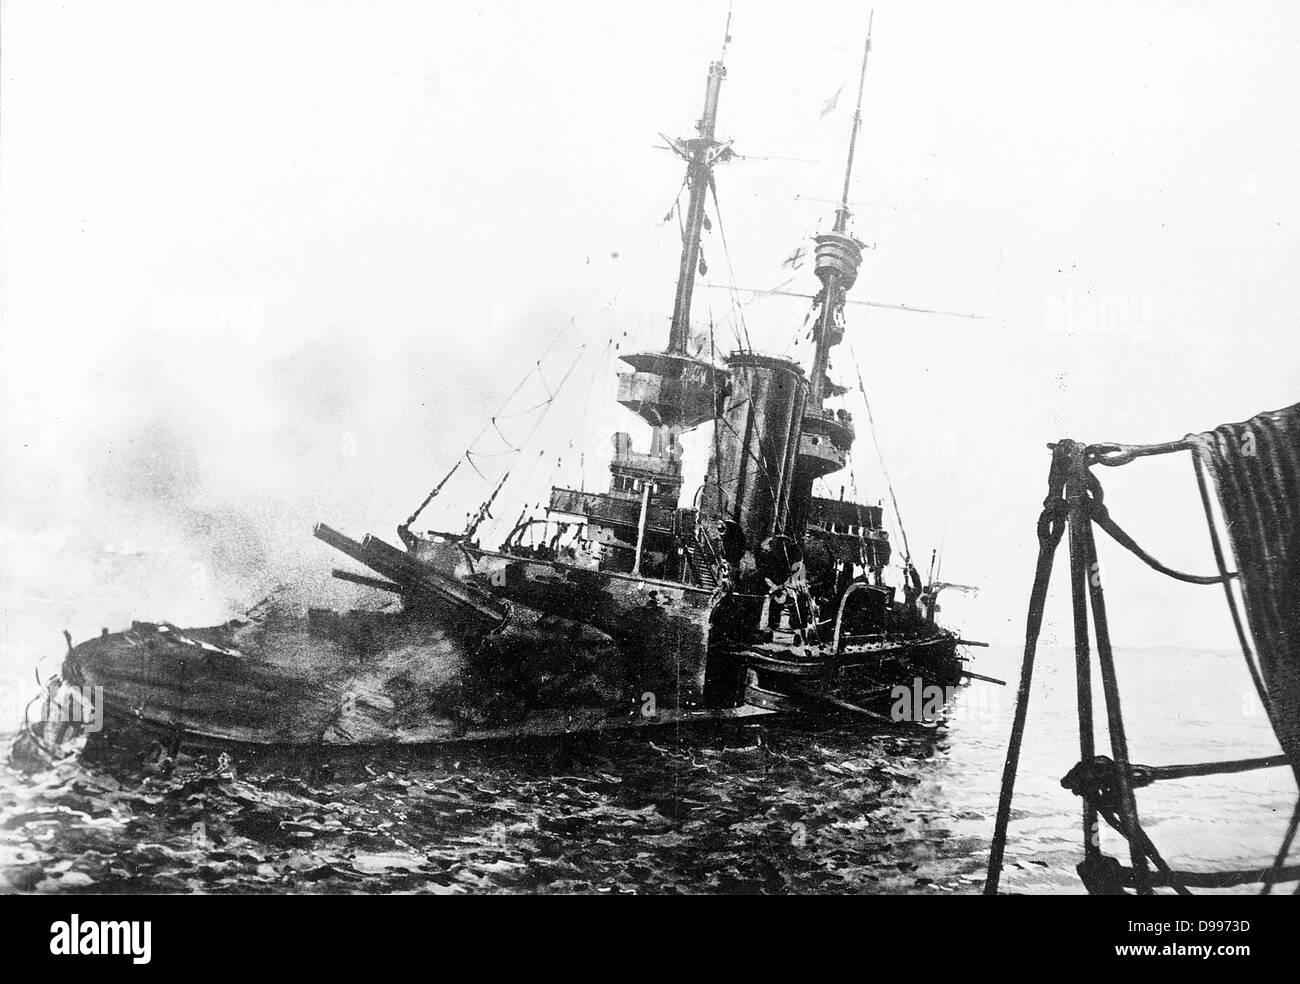 HMS Irresistible was completed in October 1901. During World War I on 18 Mar 1915, Irresistible participated in - Stock Image